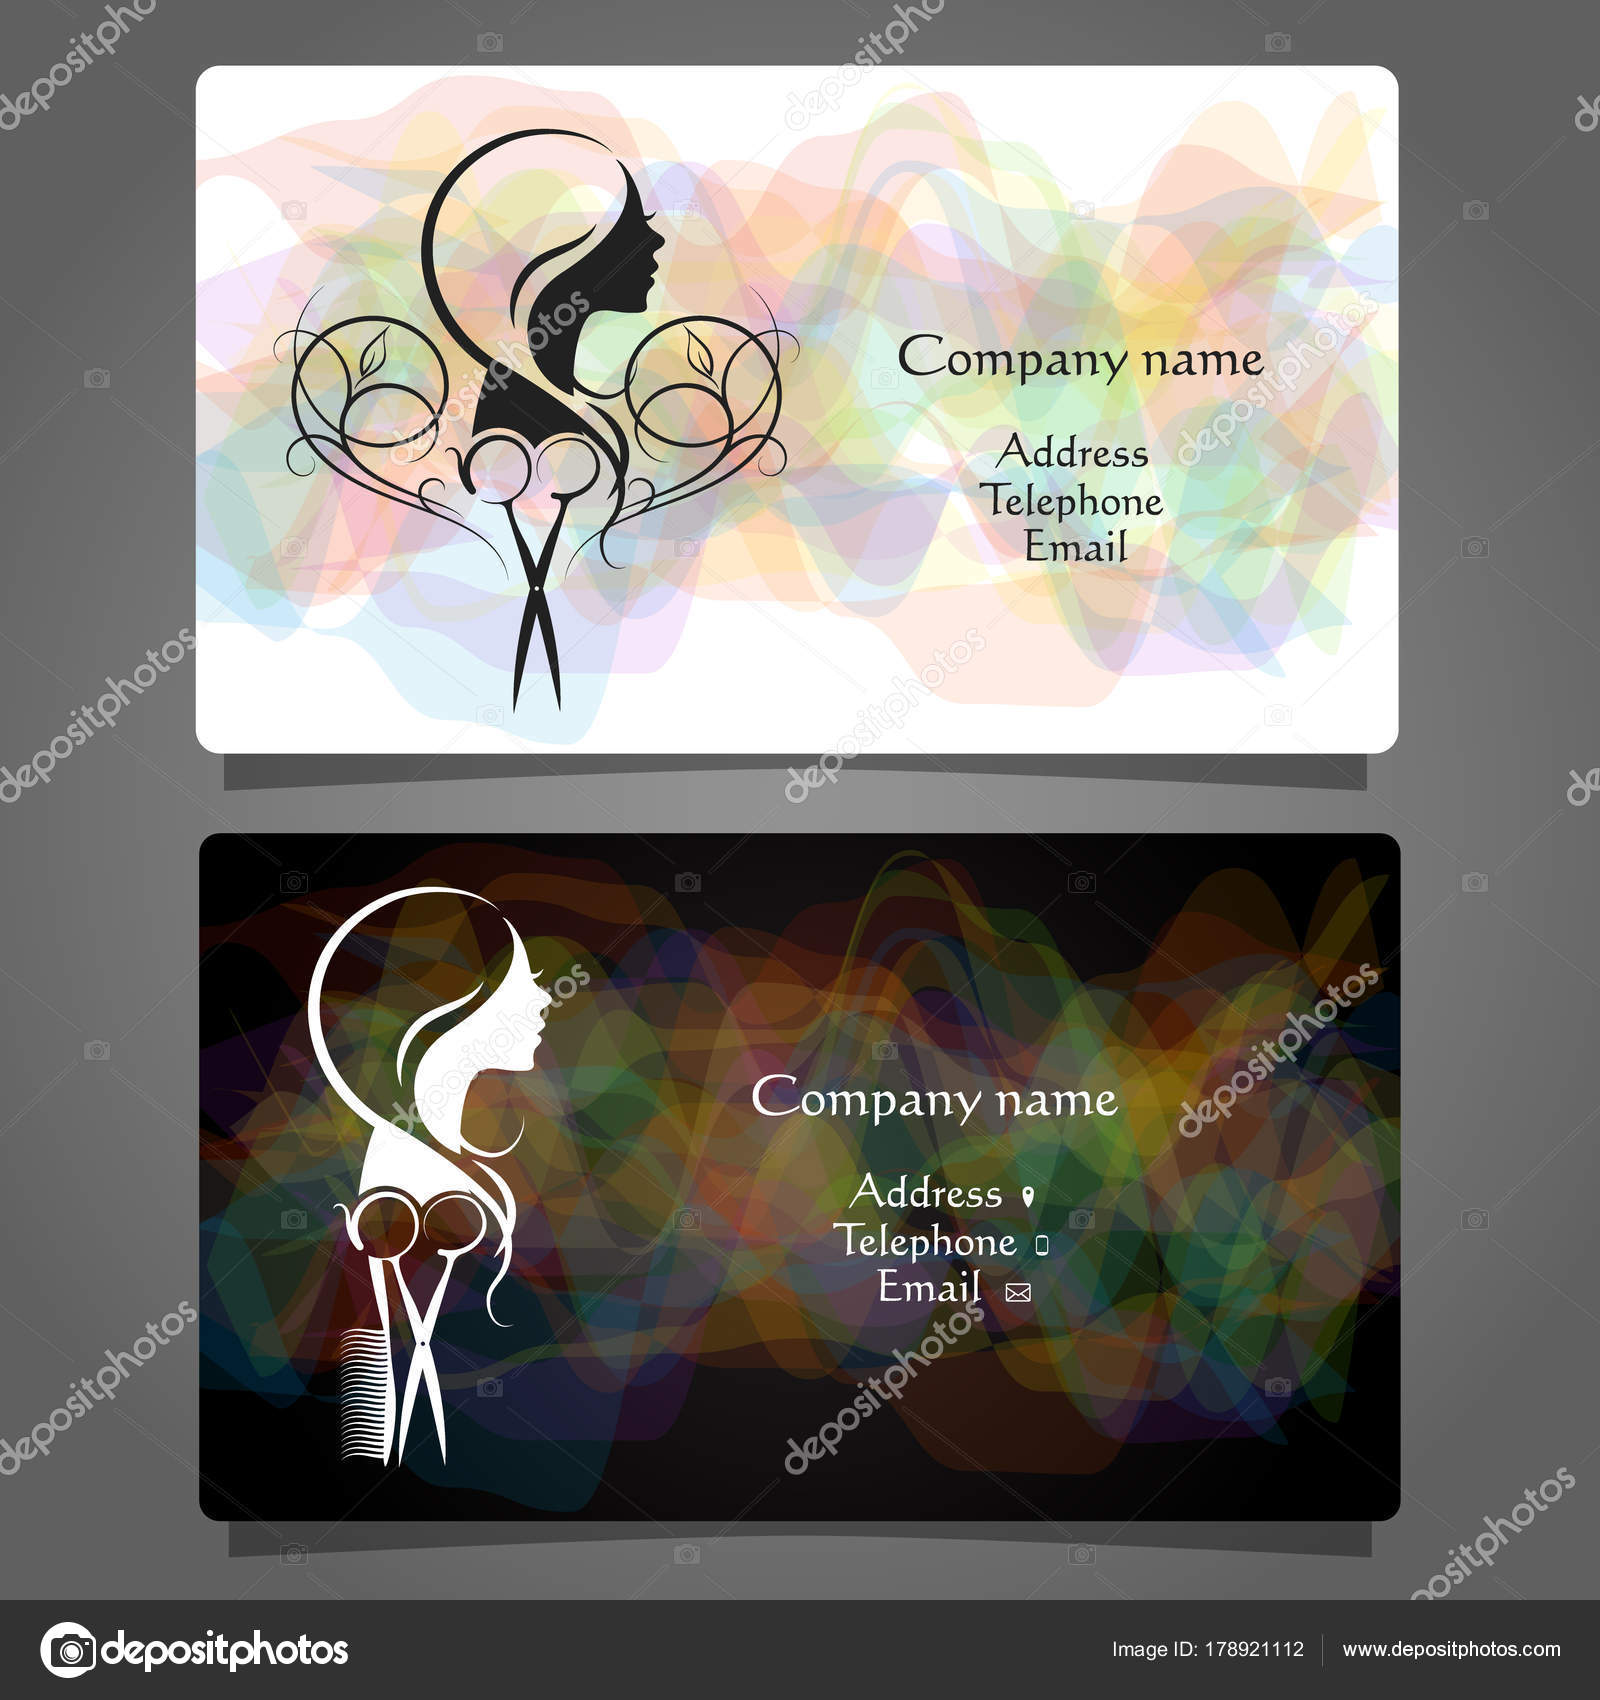 Business card beauty salon and hairdresser stock vector john1279 business card beauty salon and hairdresser stock vector reheart Choice Image